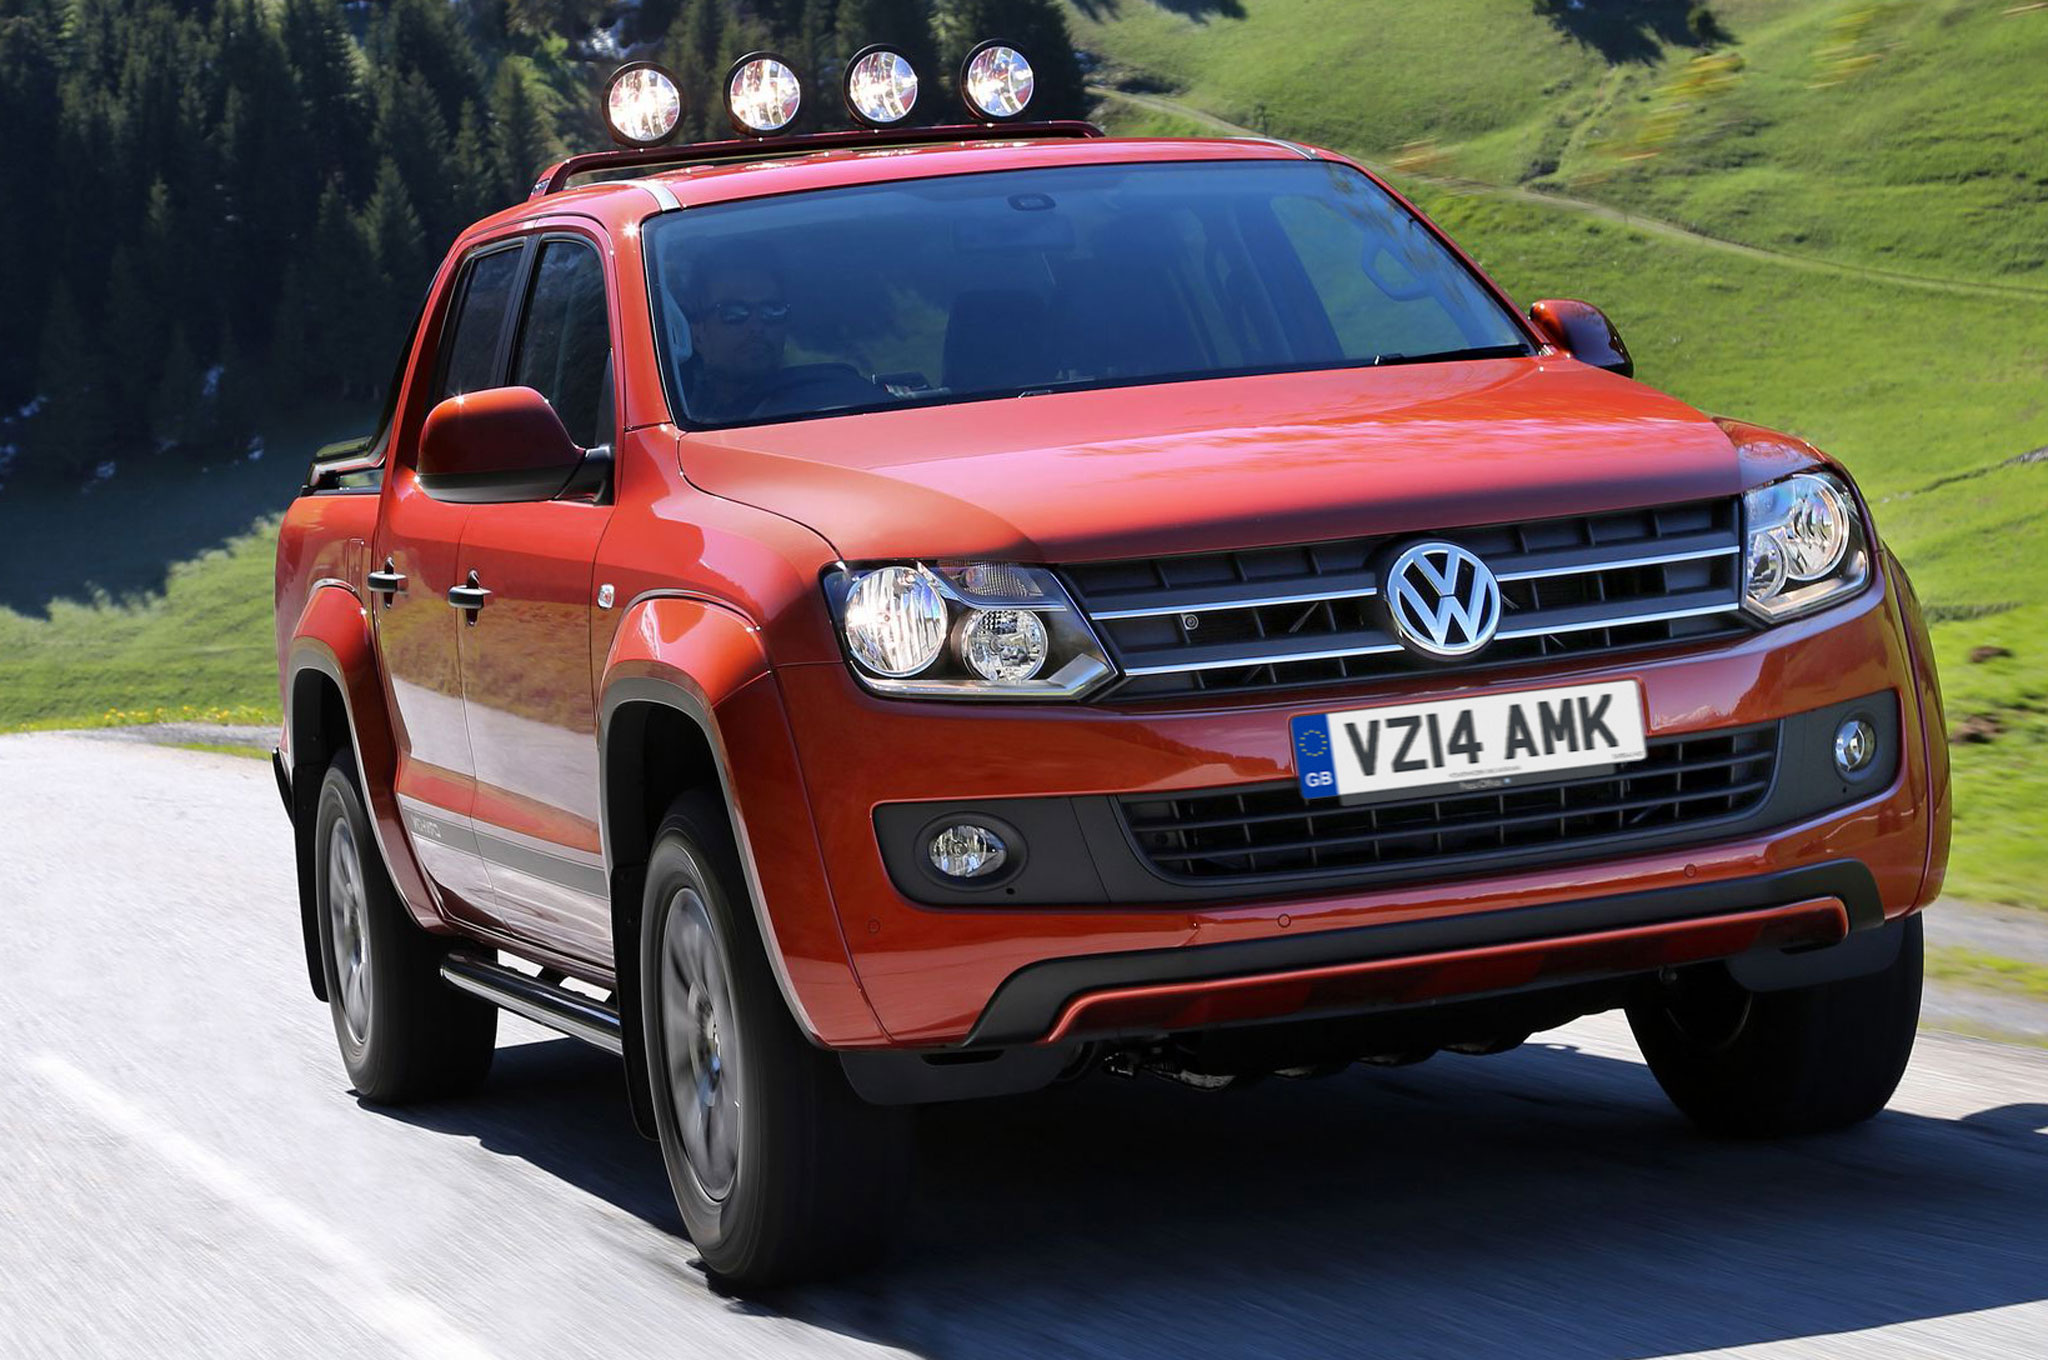 2014 volkswagen amarok canyon reviewLikewise V6 Volkswagen Amarok 2017 As Well Vw Headlight Switch Wiring #2